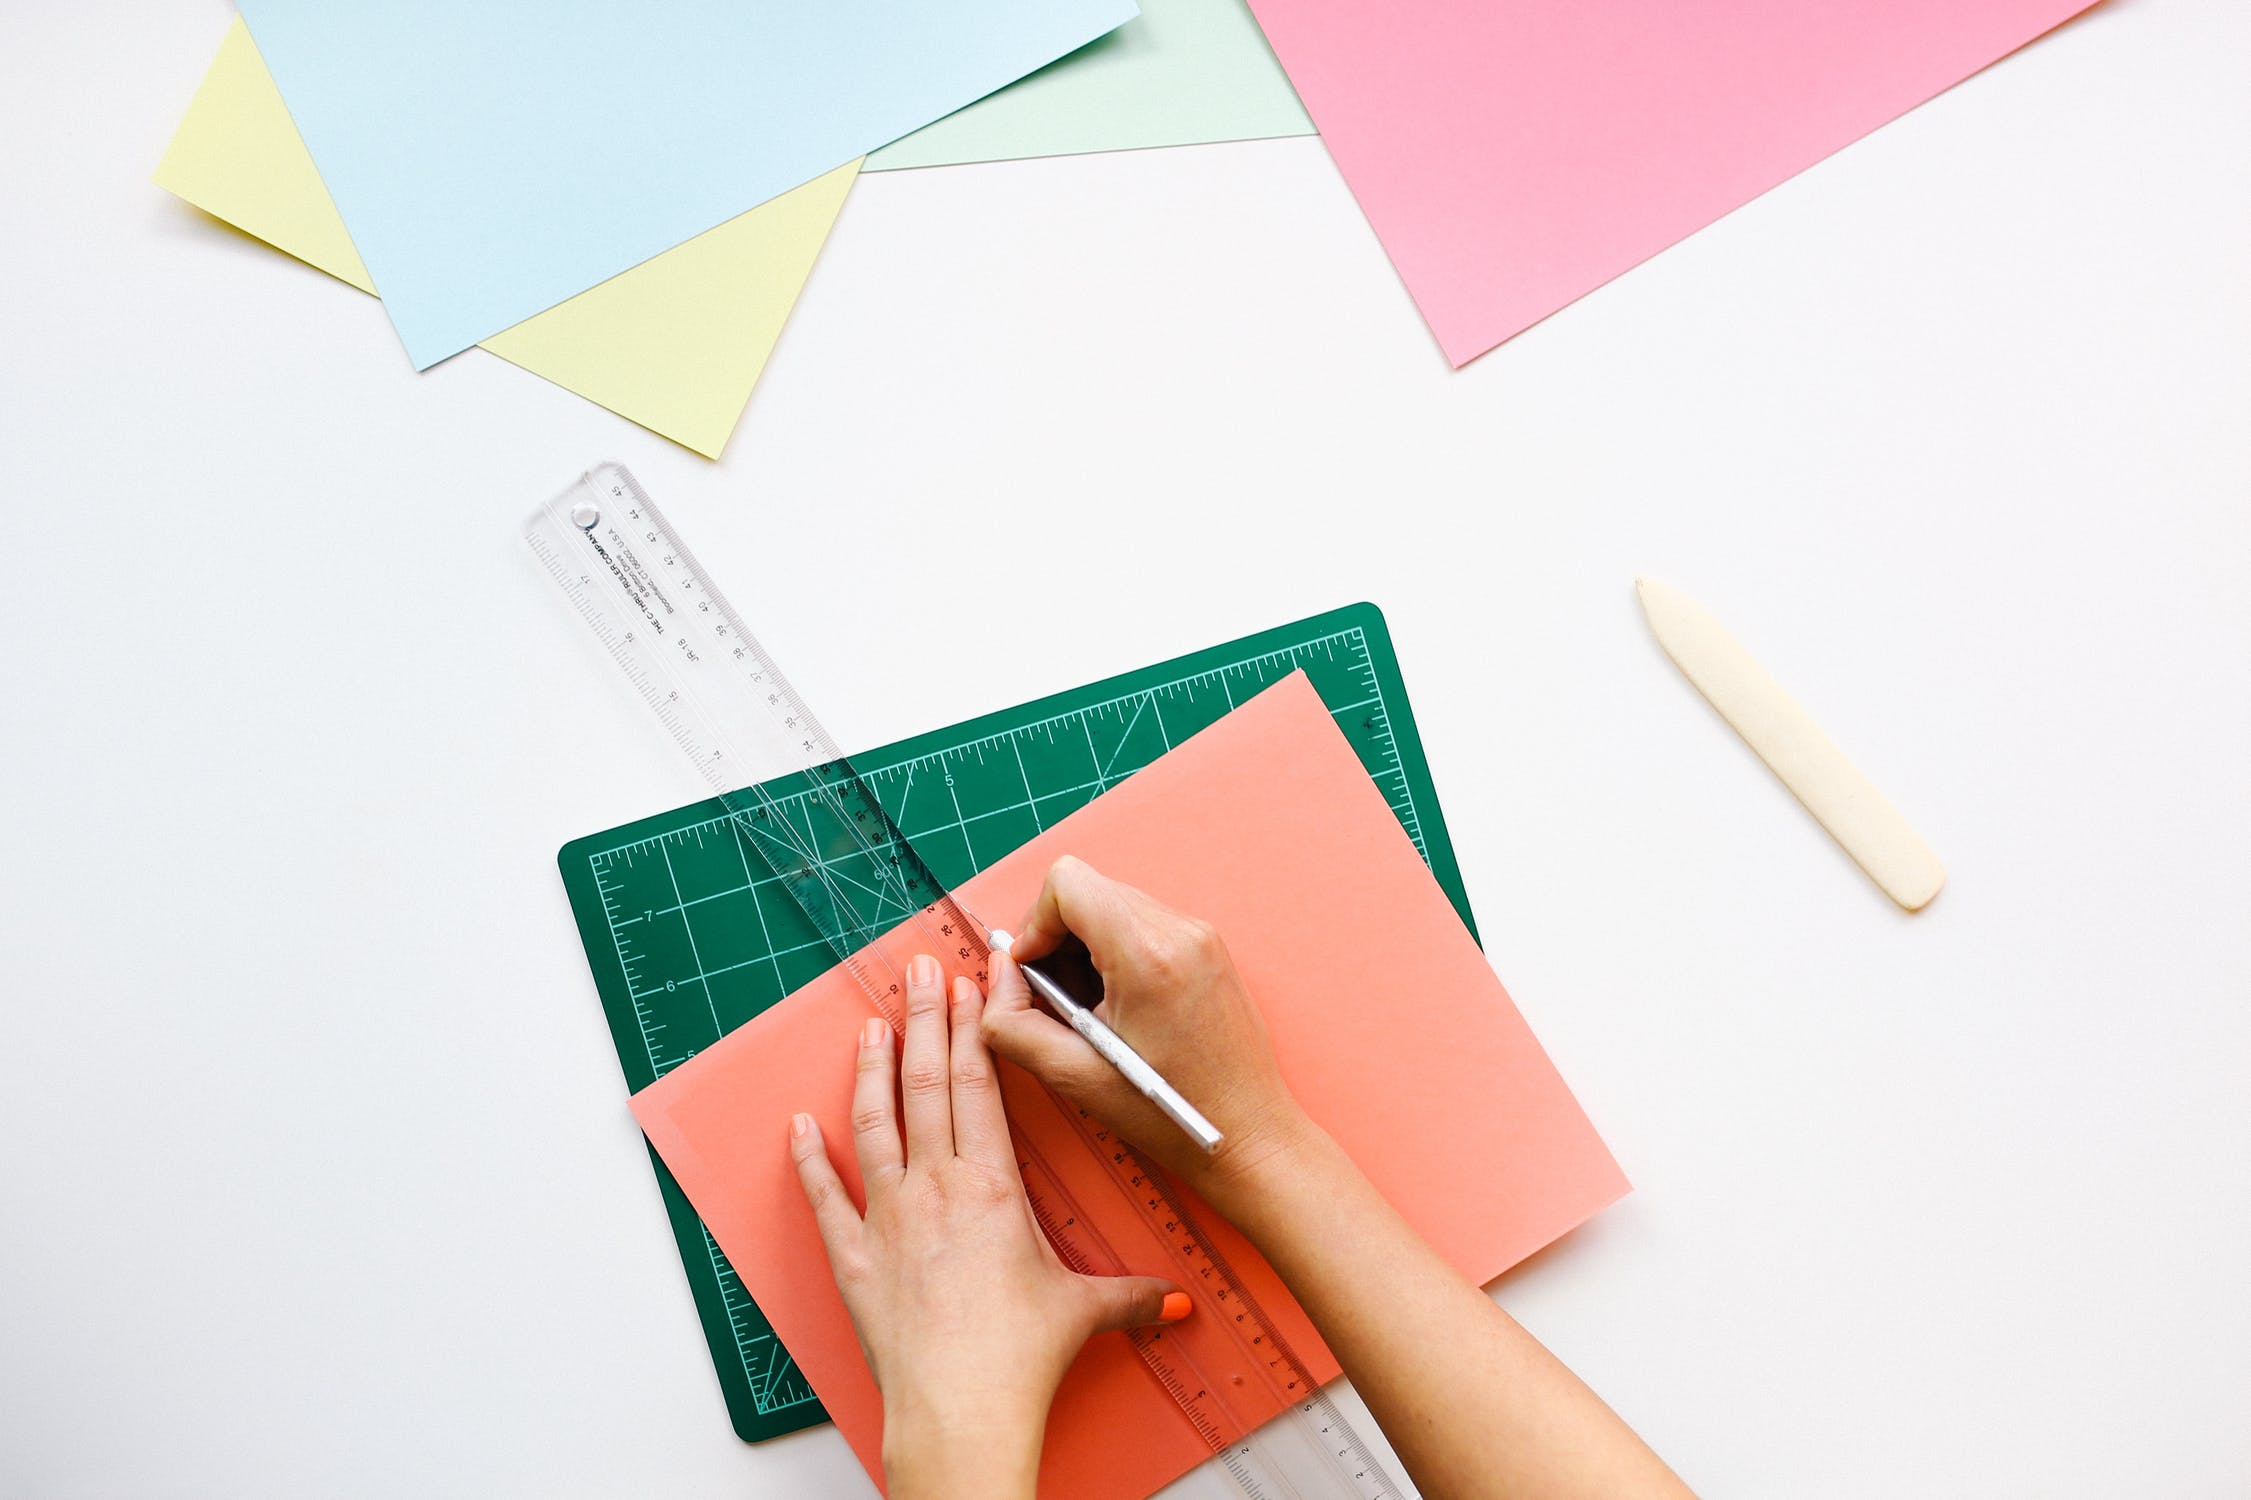 A person using a hobby knife and a ruler to cut colorful pieces of construction paper. Photo by pexels user Pixbay. Used courtesy of pexels.com